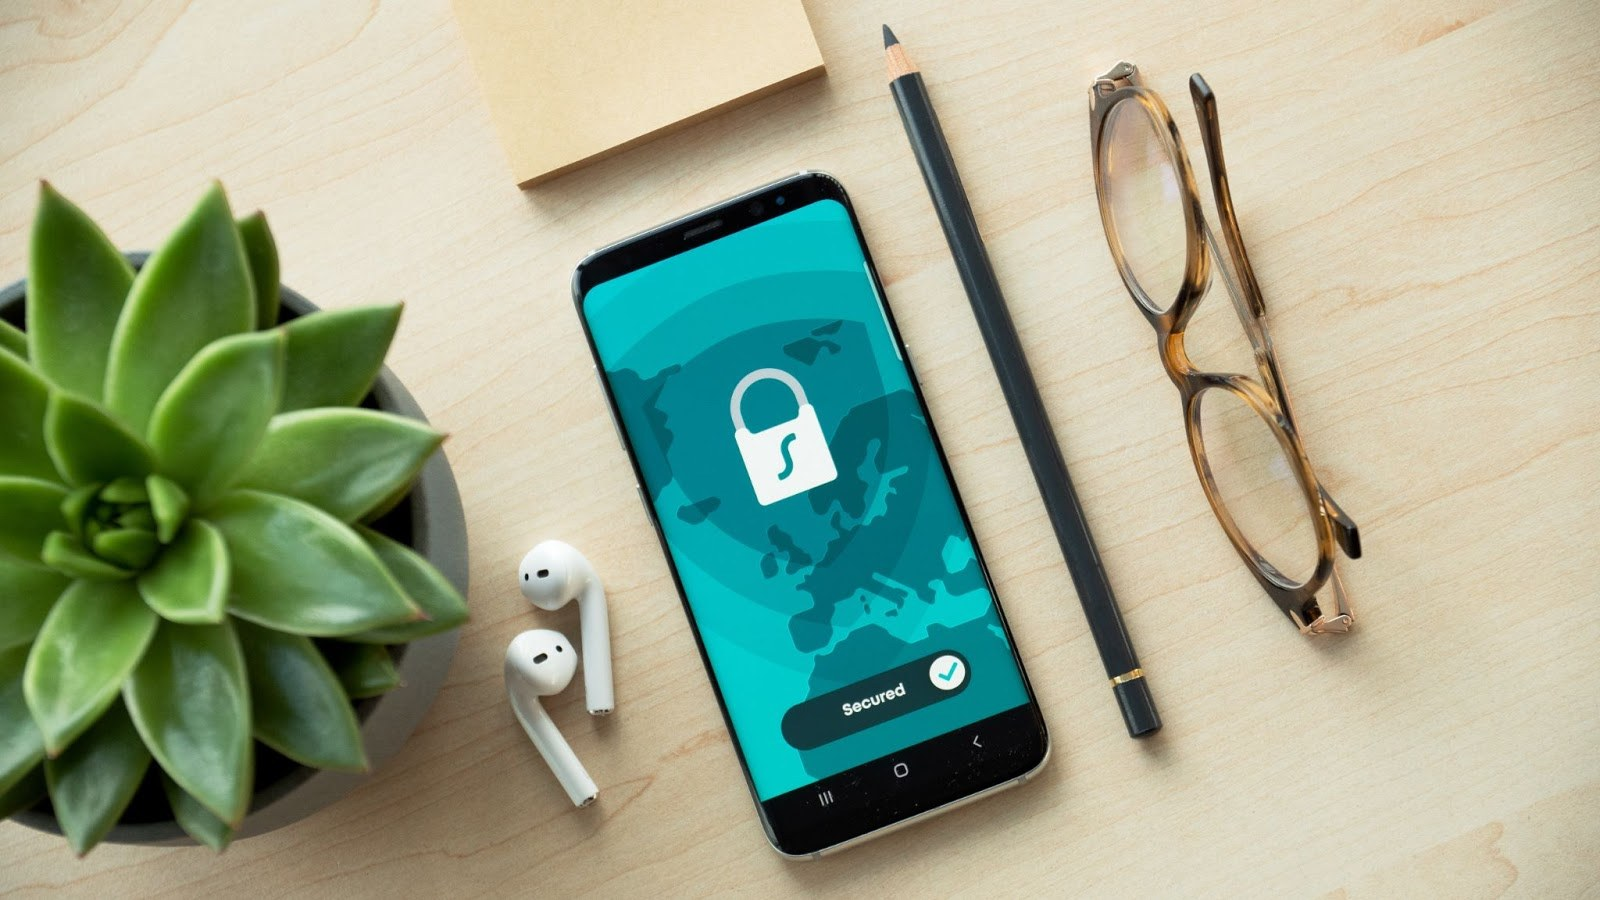 Personal online security tips to protect your privacy